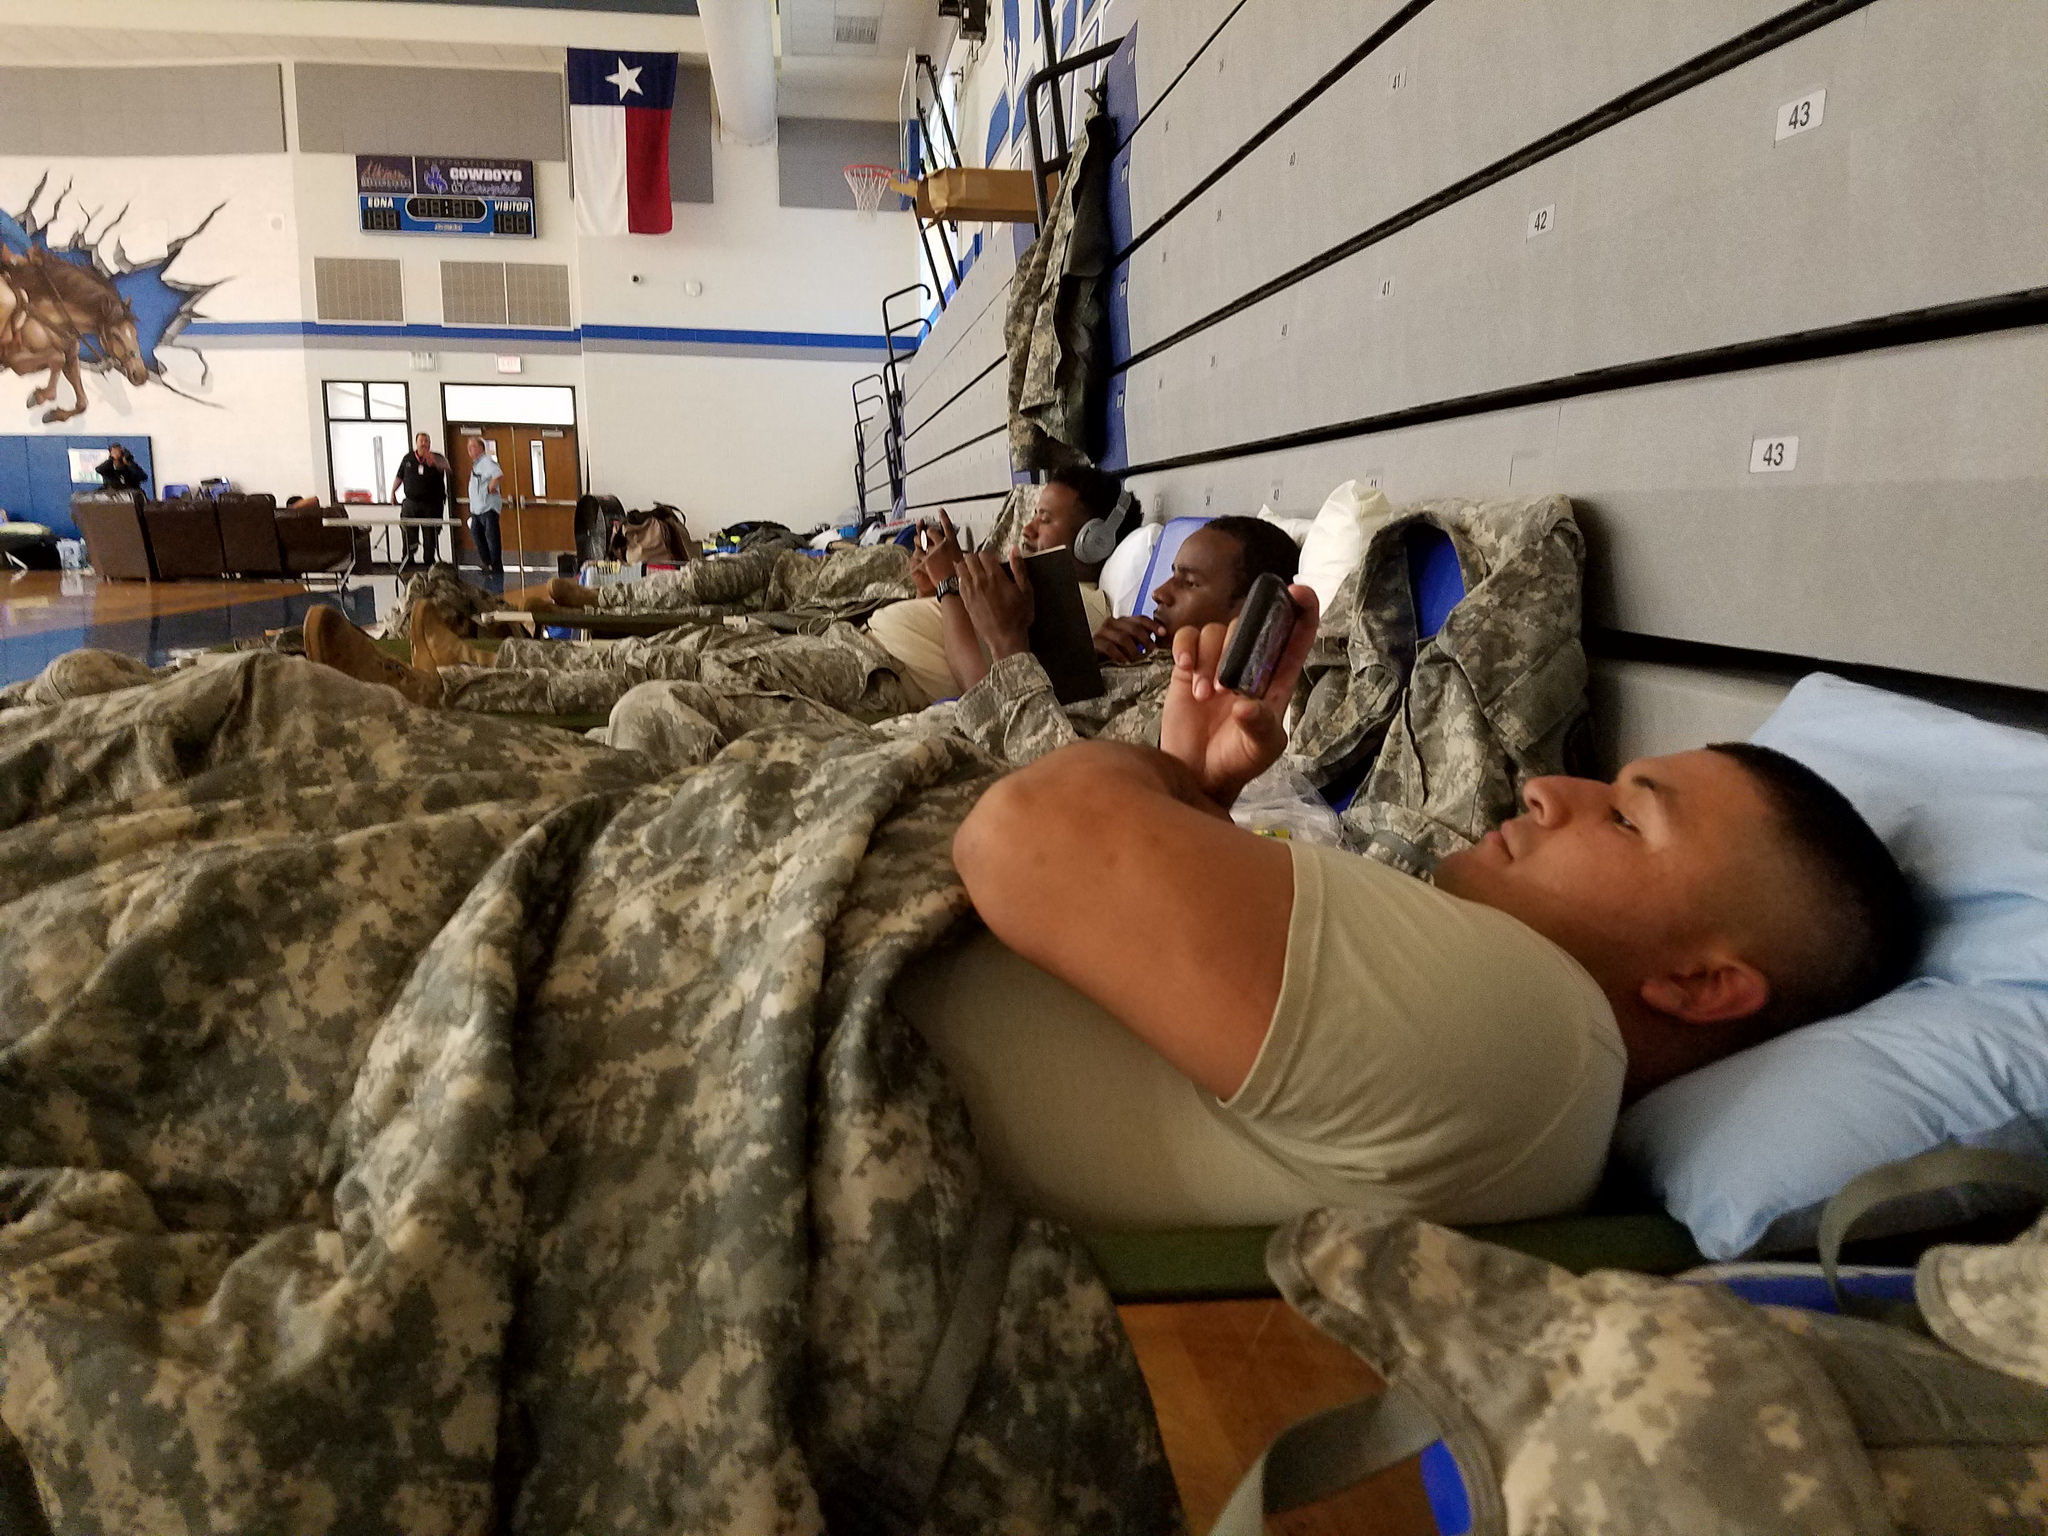 Texas National Guard soldiers respond to the aftermath of Hurricane Harvey on Aug. 25, 2017. (Staff Sgt. Tim Pruitt/National Guard)